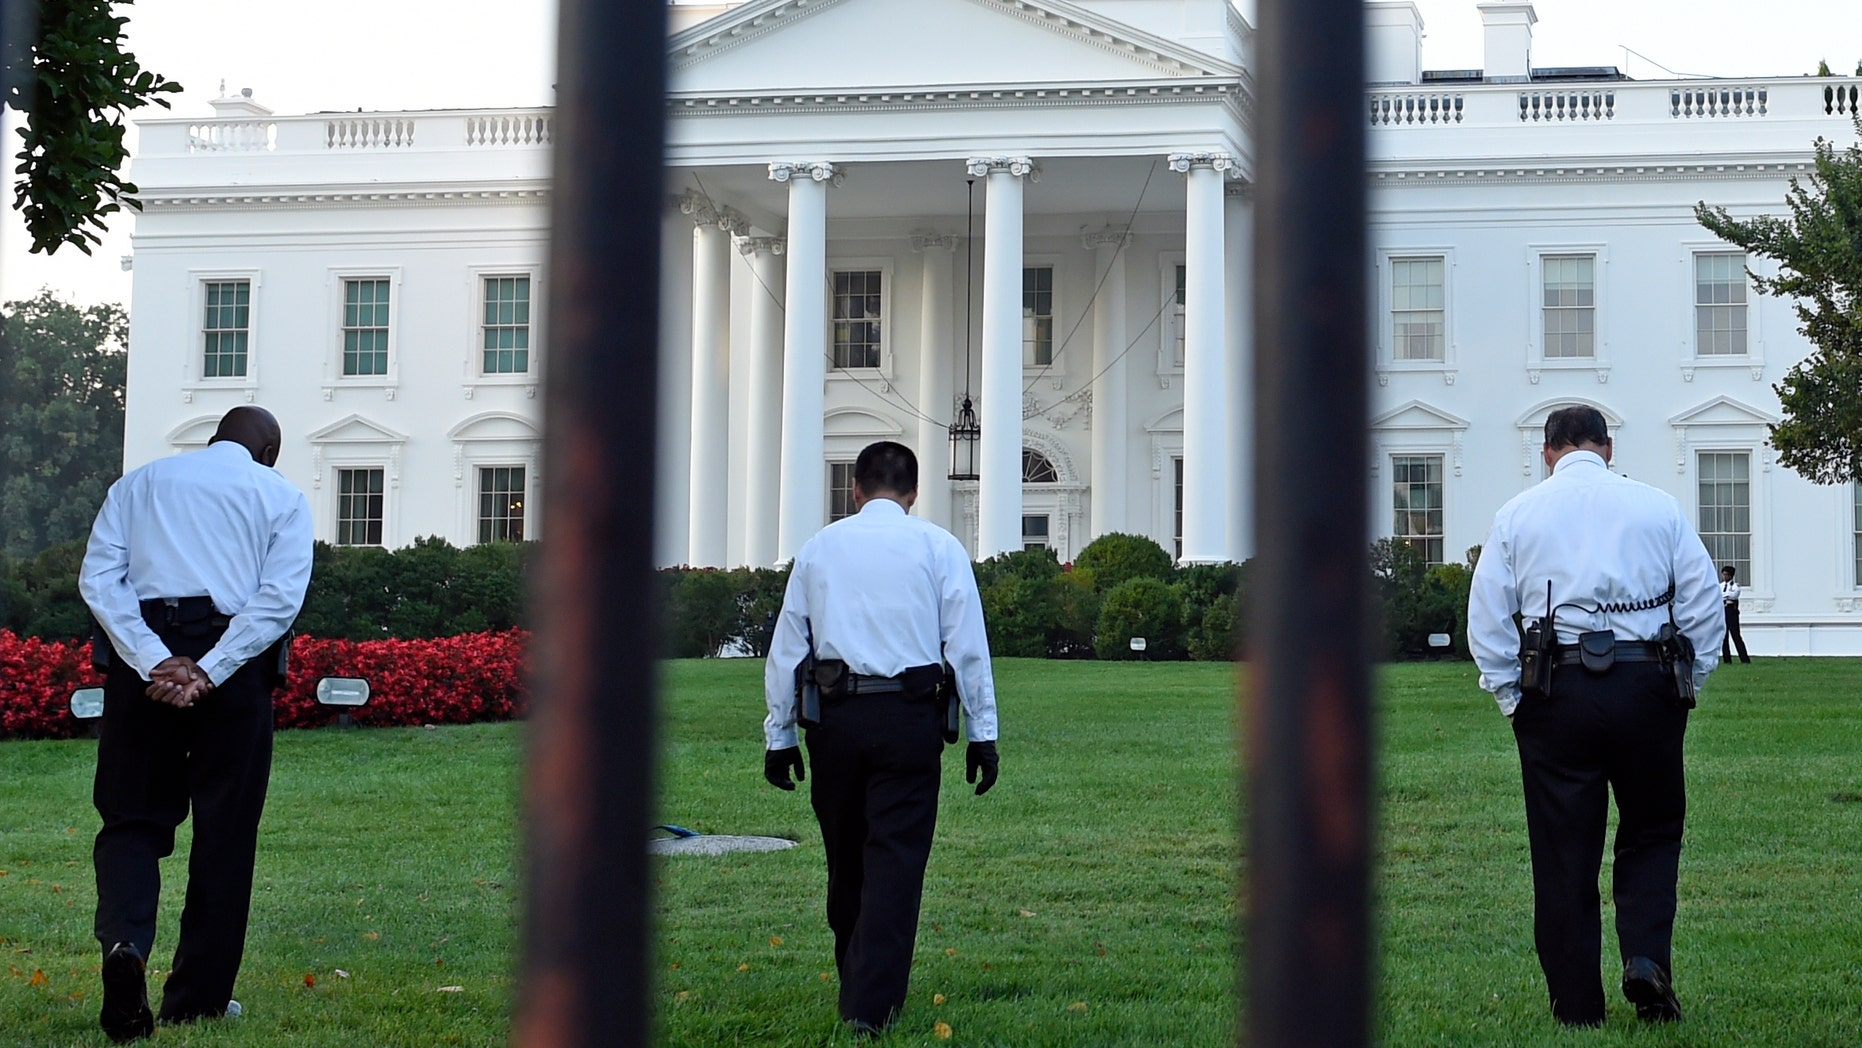 Sept. 20, 2014: Uniformed Secret Service officers walk along the lawn on the North side of the White House in Washington.